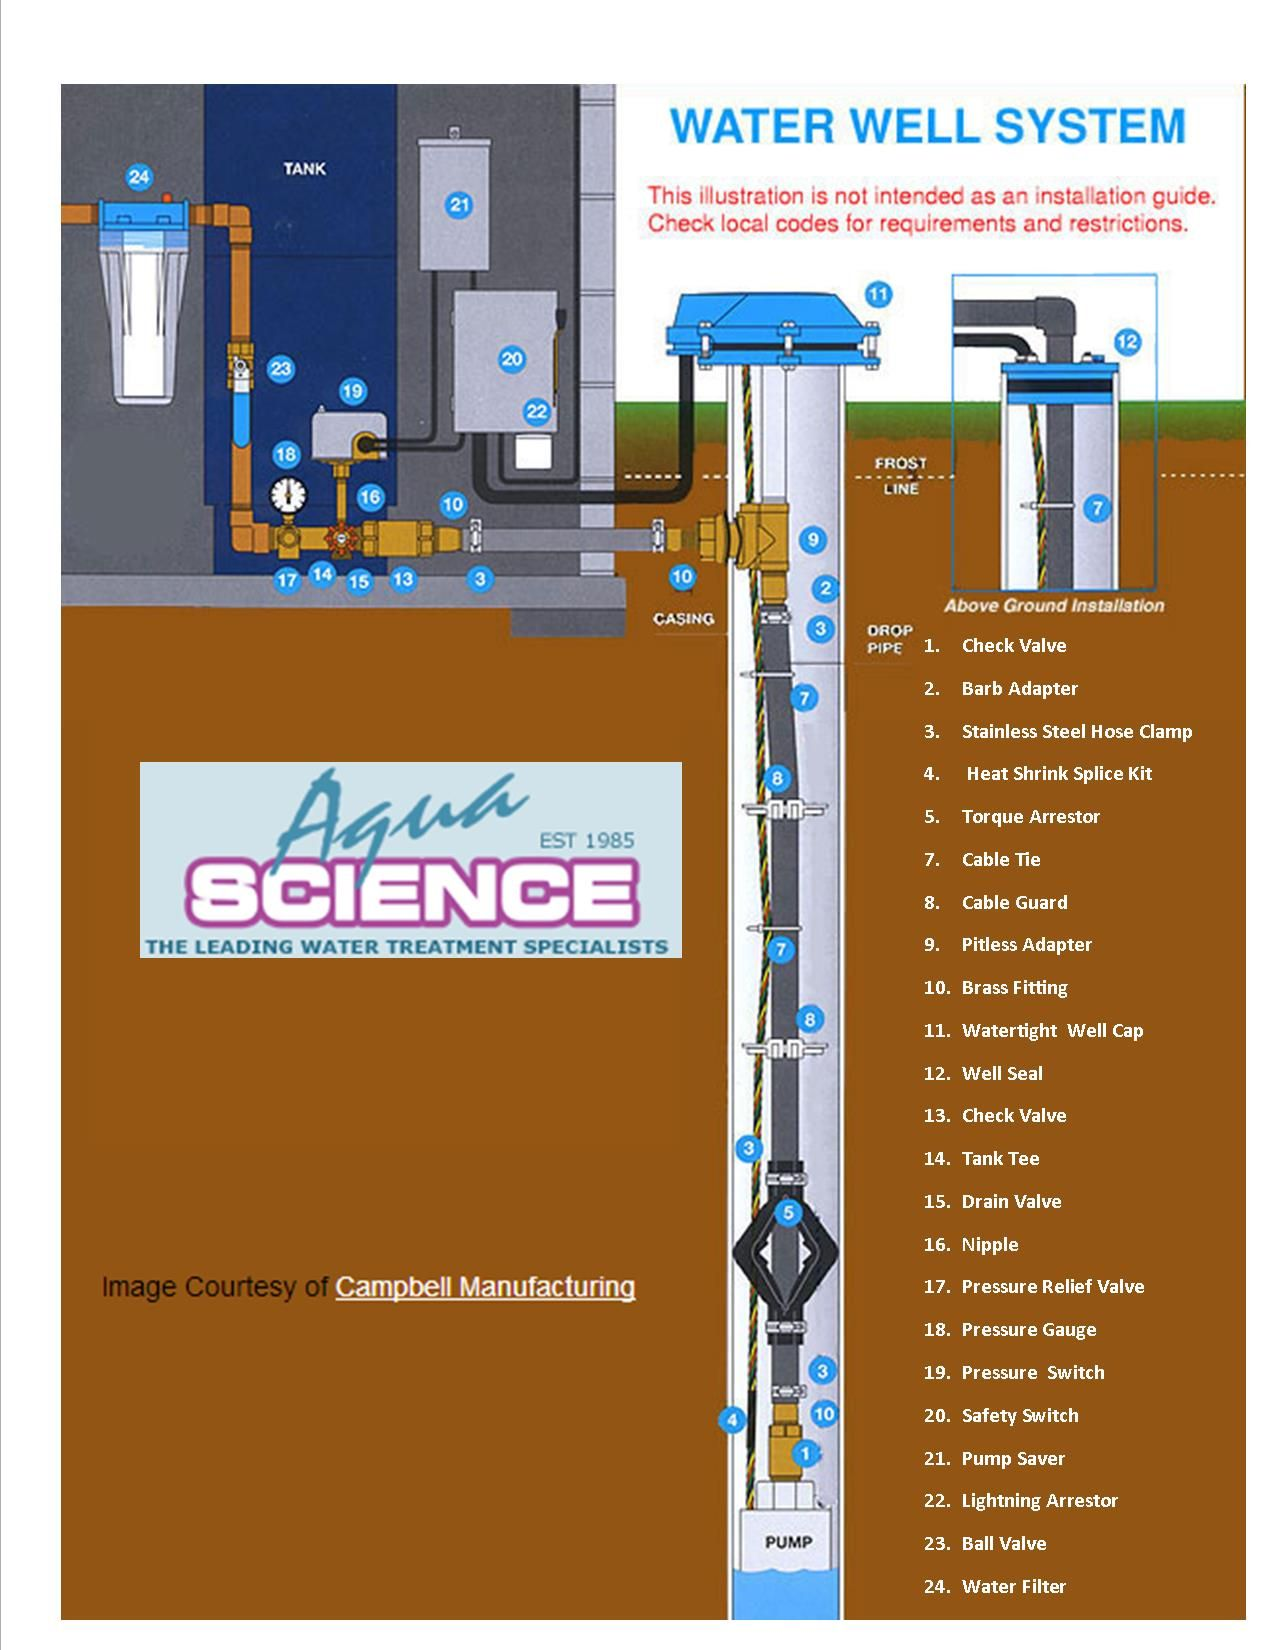 Complete Drilled Well System | Well water system, Well pump repair, Water  well drillingPinterest